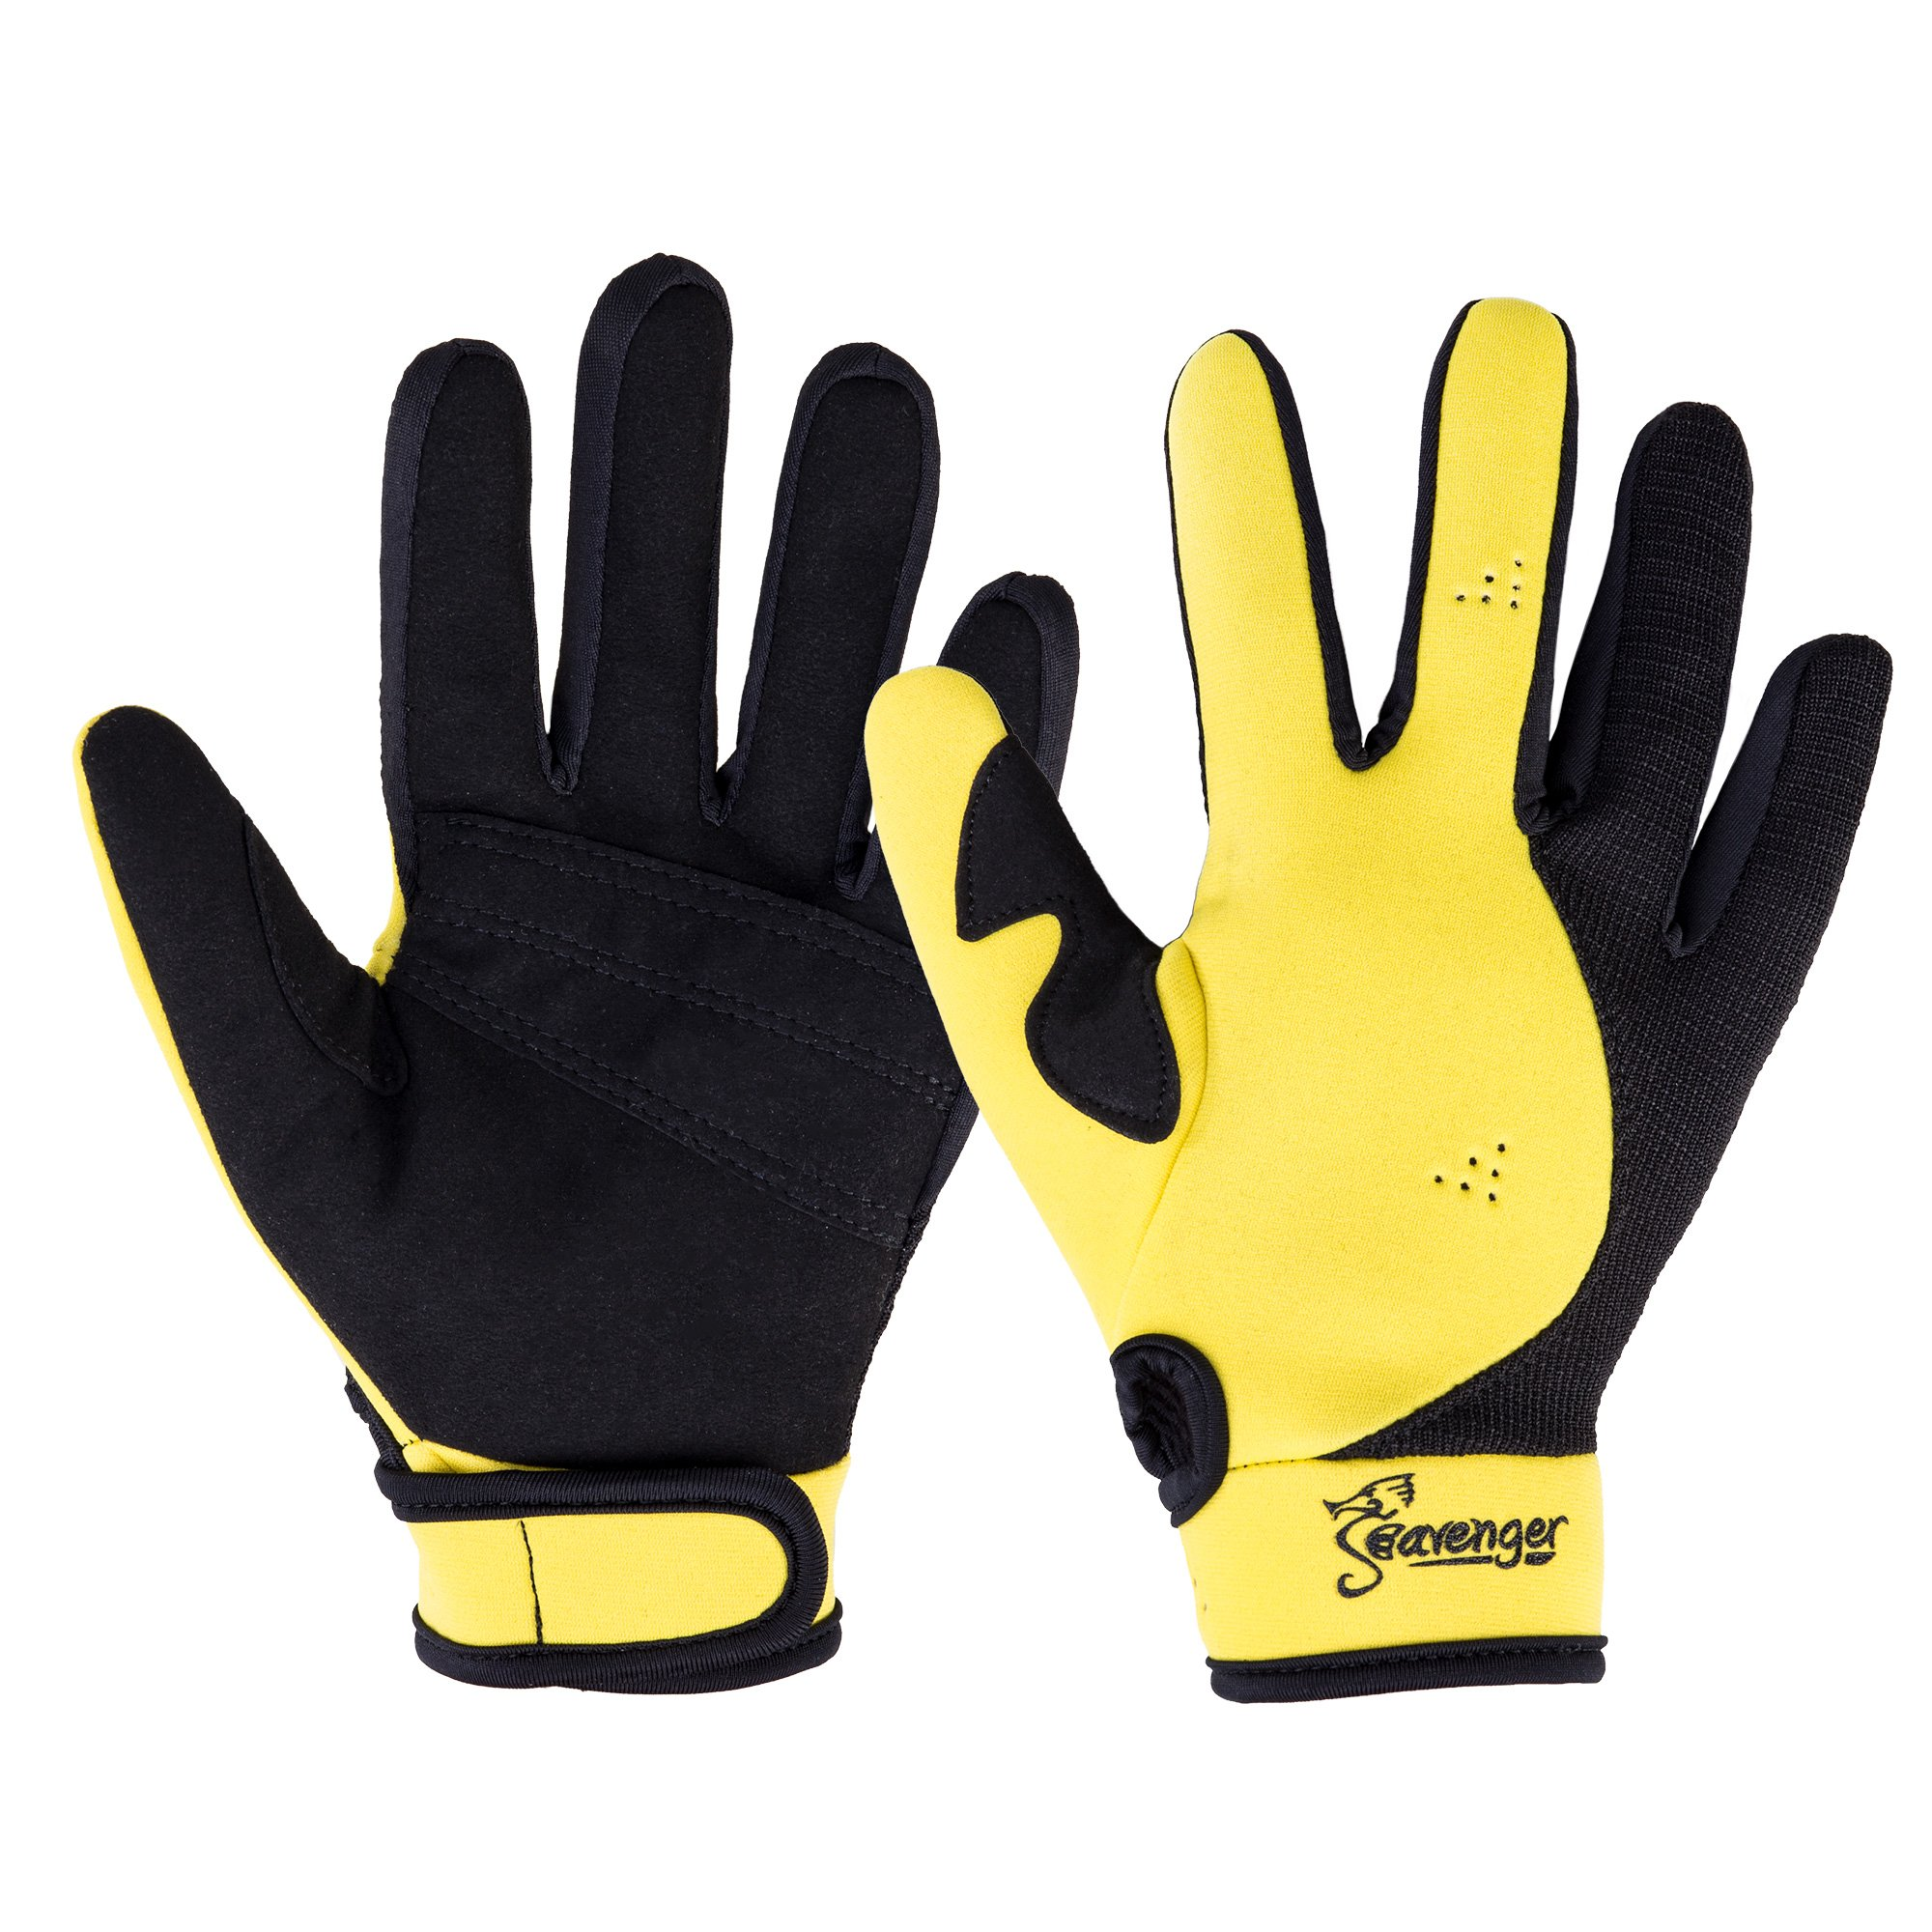 Seavenger Abyss Dive Gloves | 1.5mm Neoprene Mesh | Scuba Diving, Wakeboarding, Spearfishing (Yellow, X-Small) by Seavenger